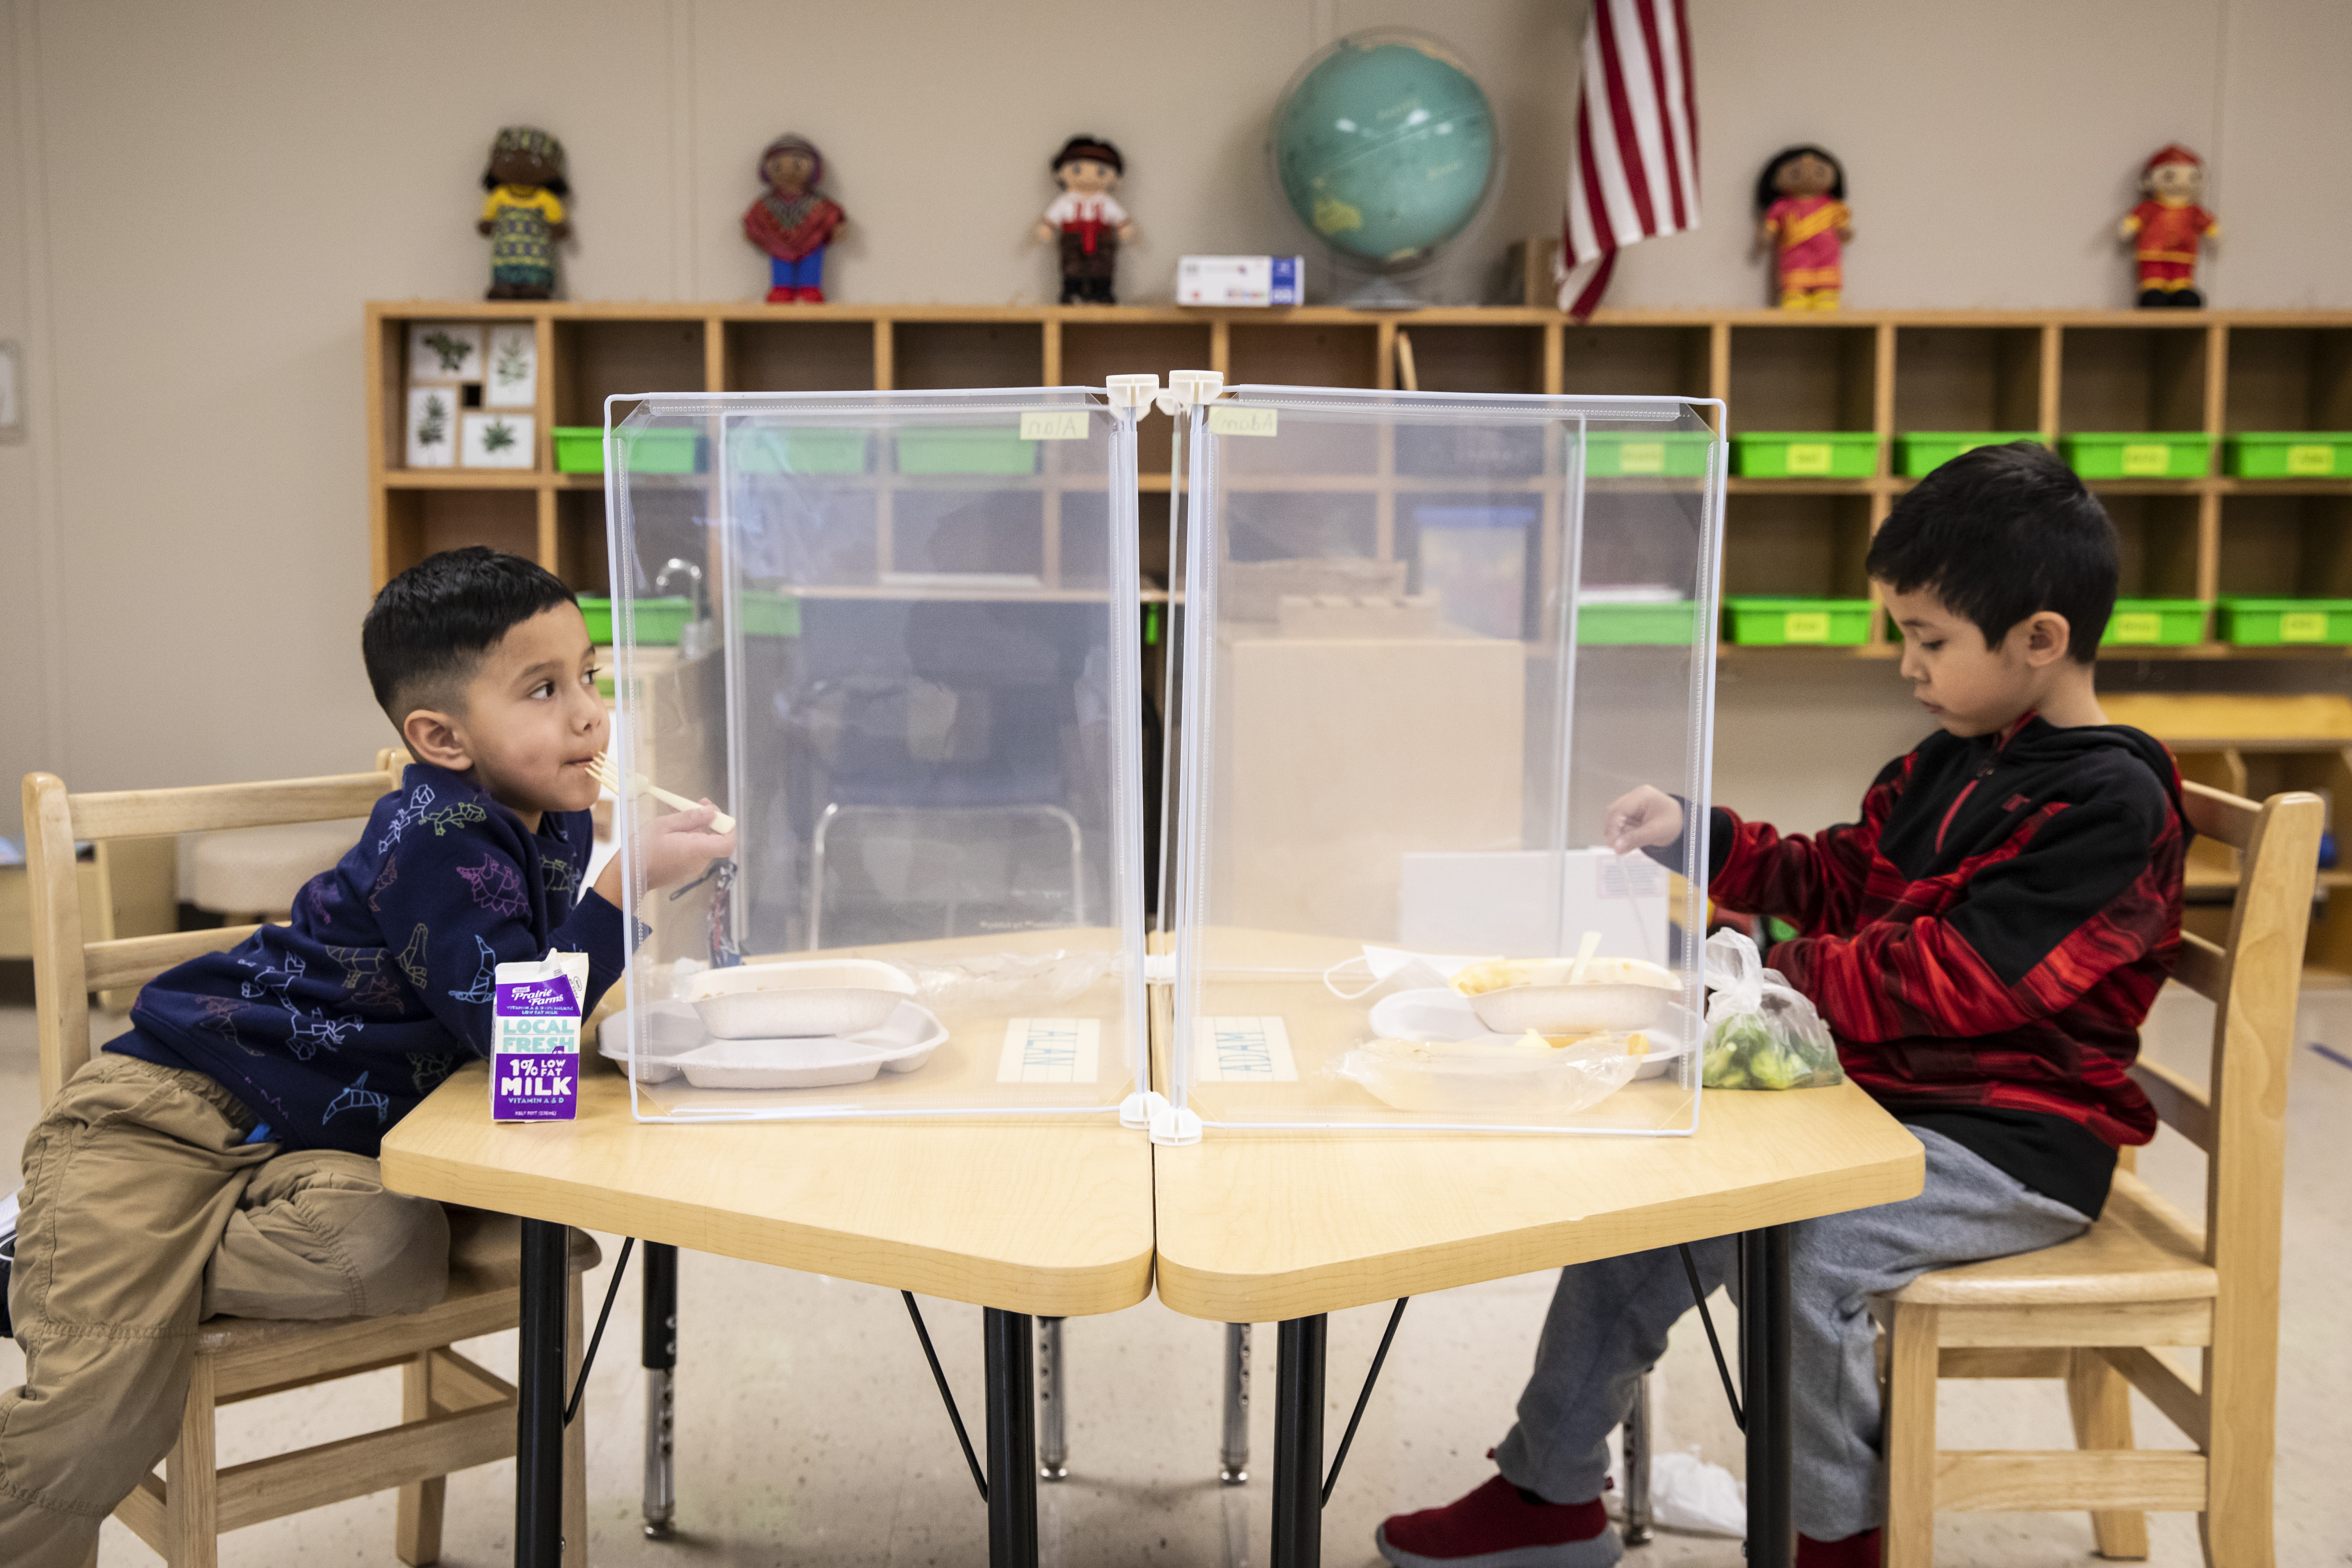 Preschool students eat lunch at Dawes Elementary, a Southwest Side school where 82% of children are Latino.